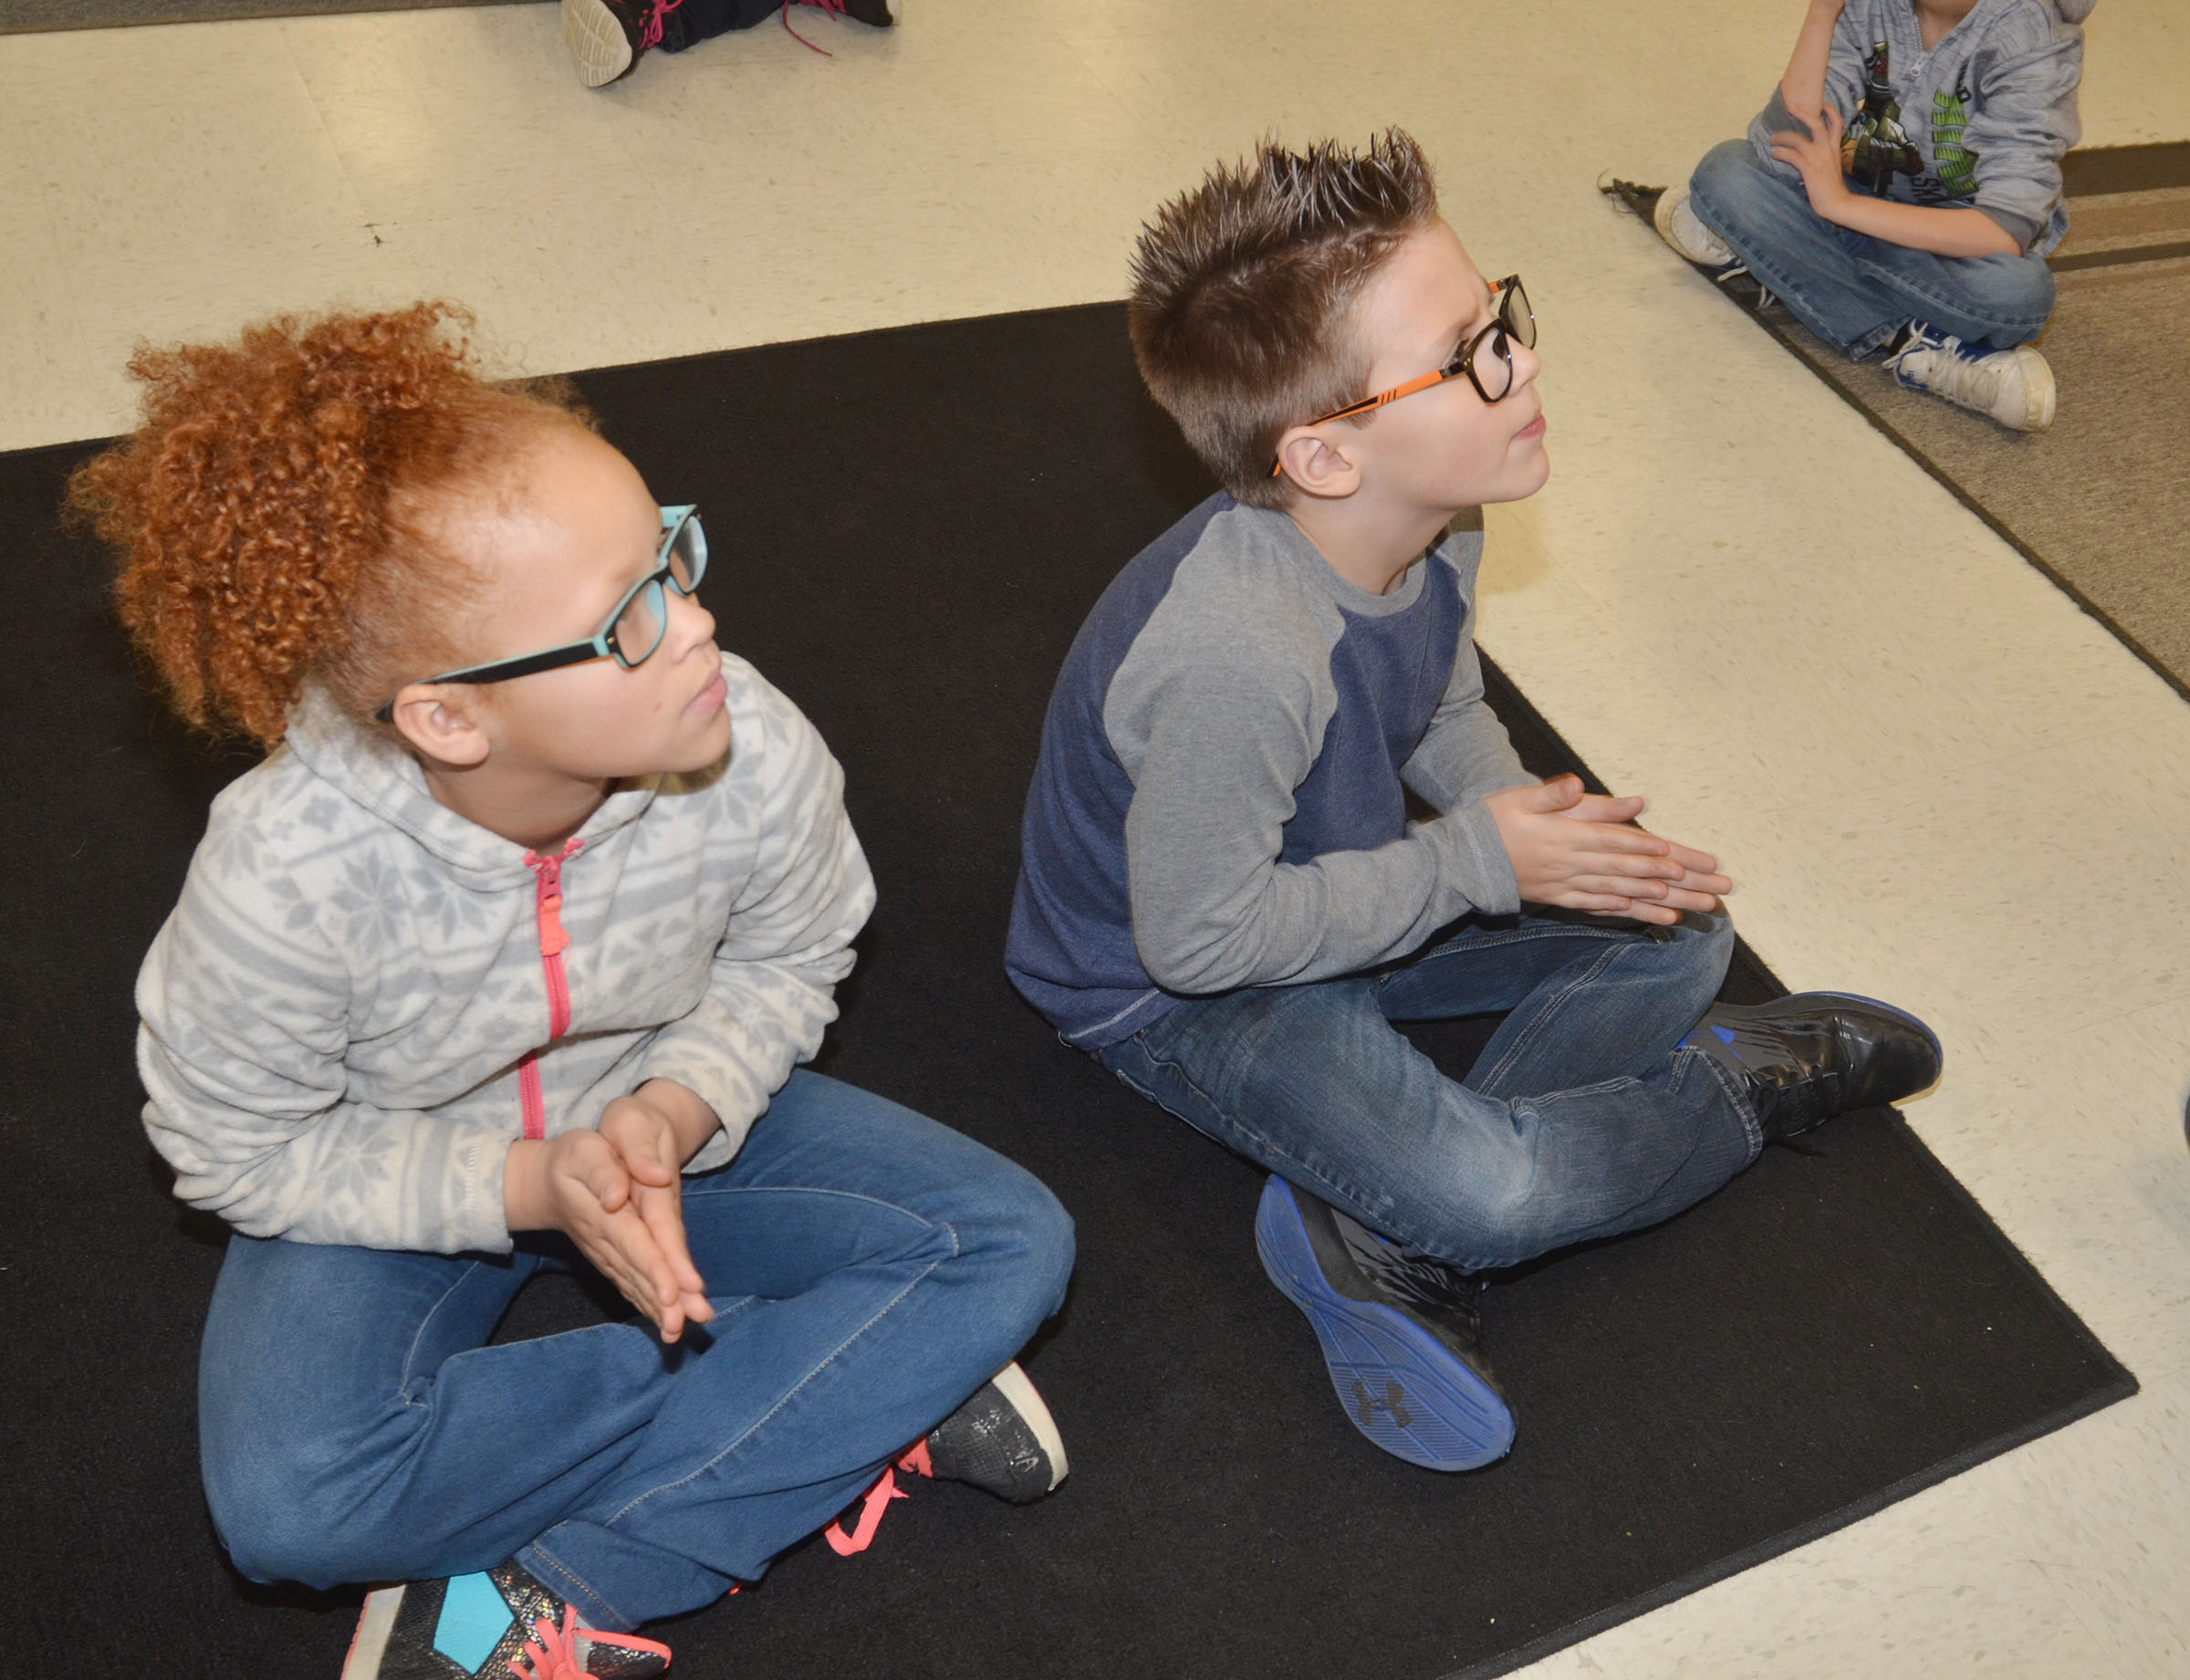 CES second-graders Kallie Taylor, at left, and Dalton Shively clap rhythms.